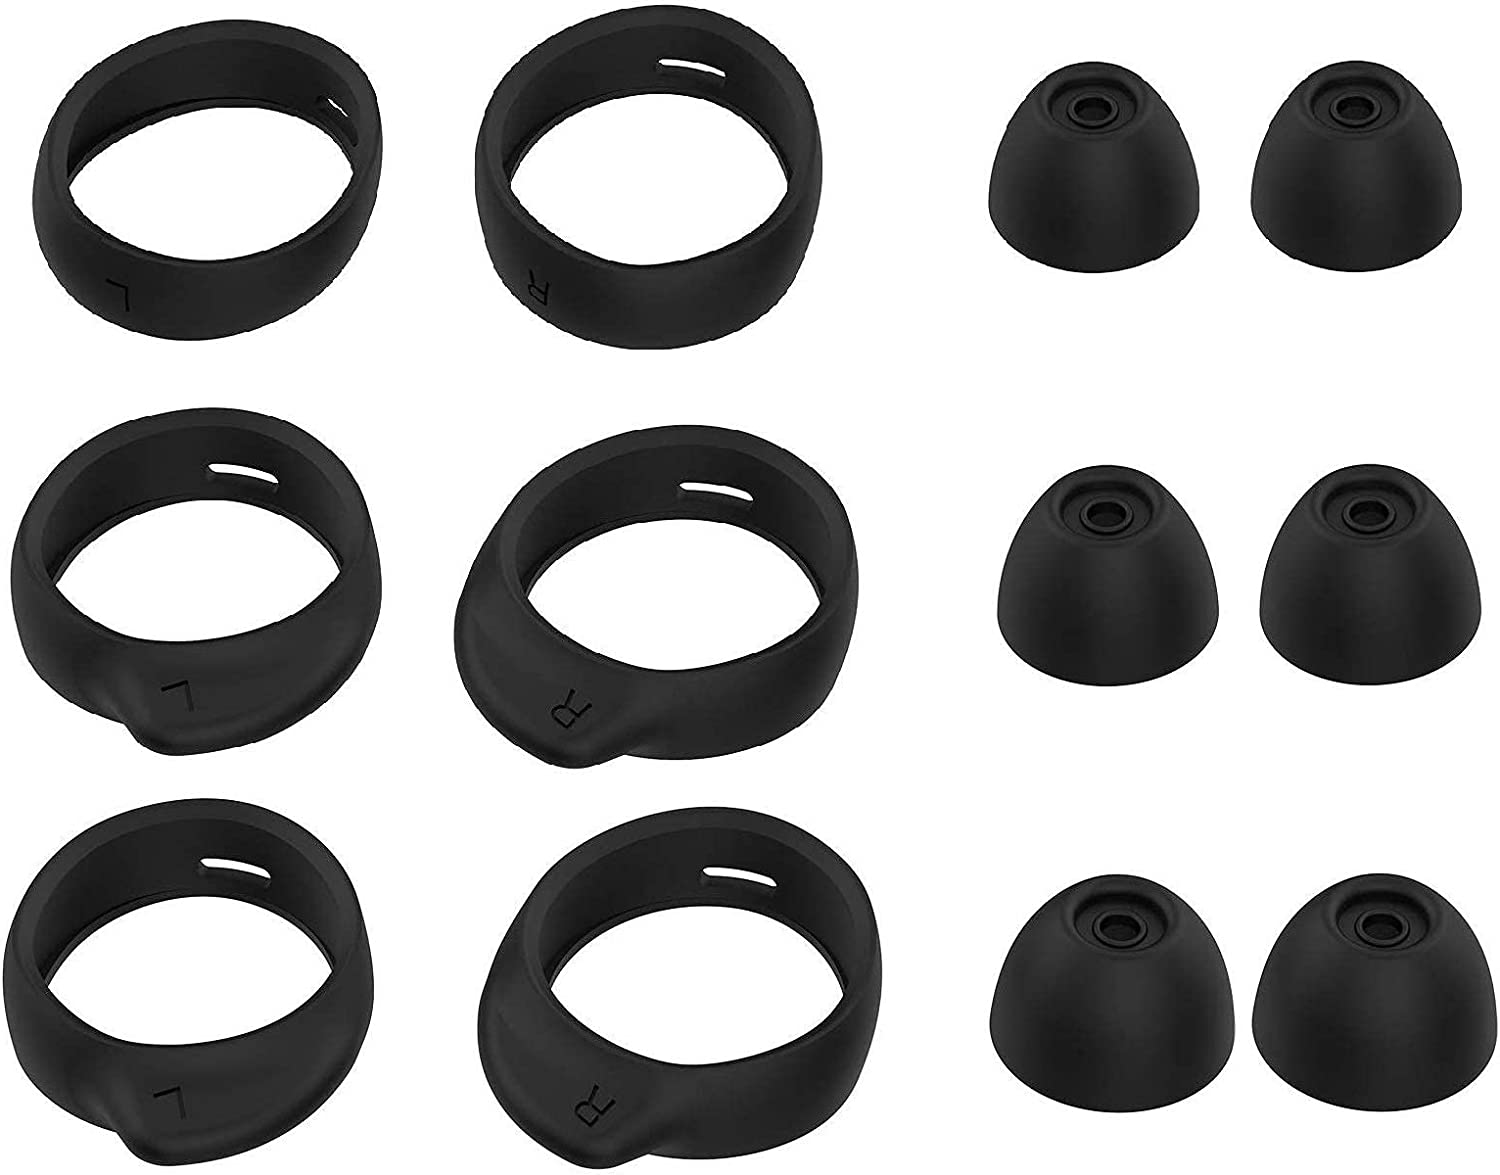 Replacement Earbud Tips 4 Pairs Silicone Ear Tips Earbuds Buds Set ...